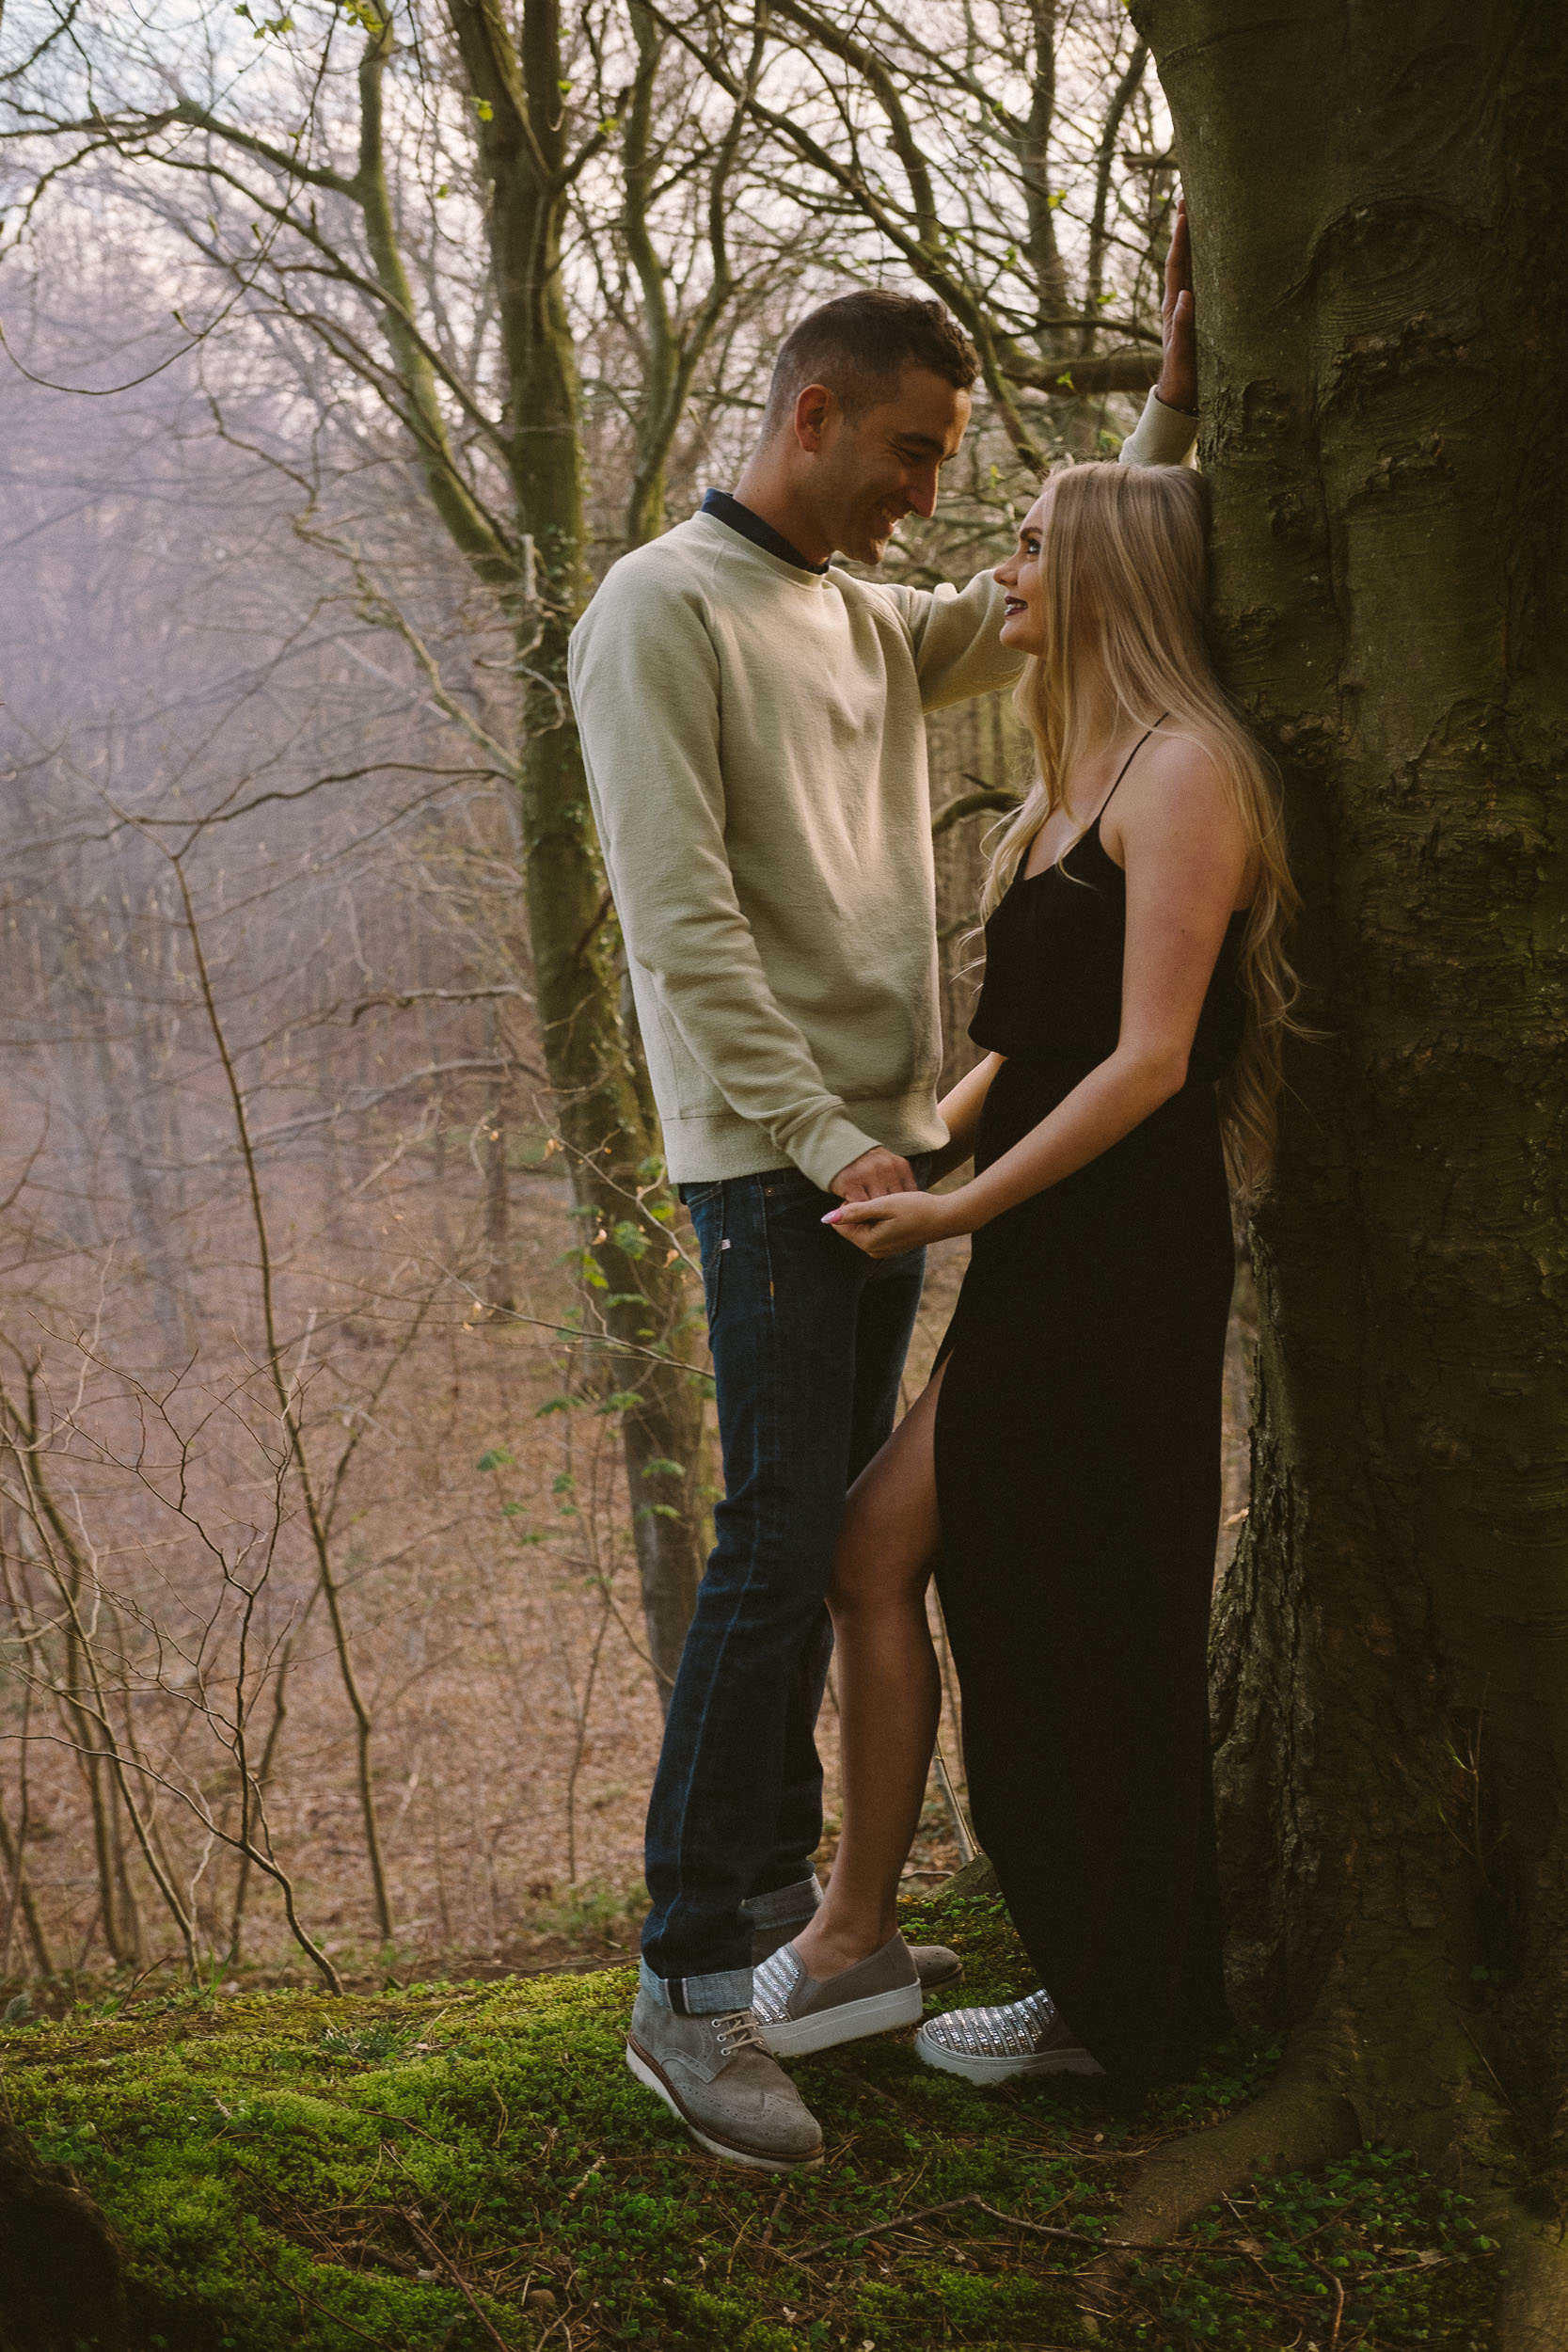 A couple hold hands and tenderly look into each other's eyes while leaning against a tree